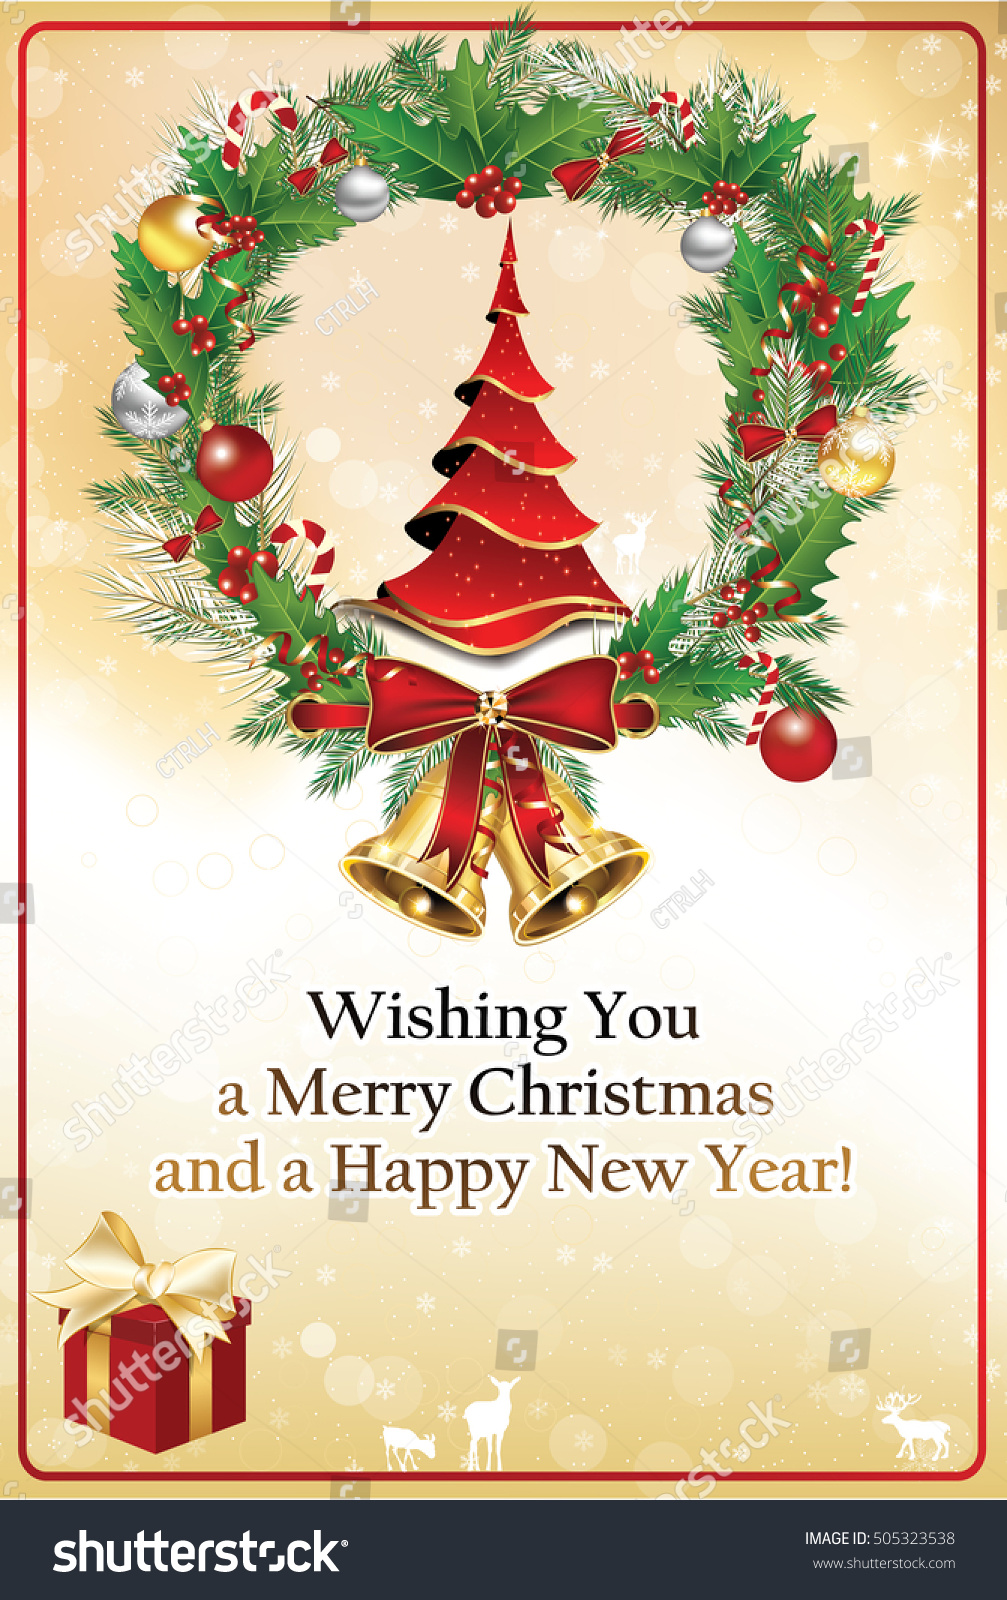 christmas new year greeting card christmas stock illustration